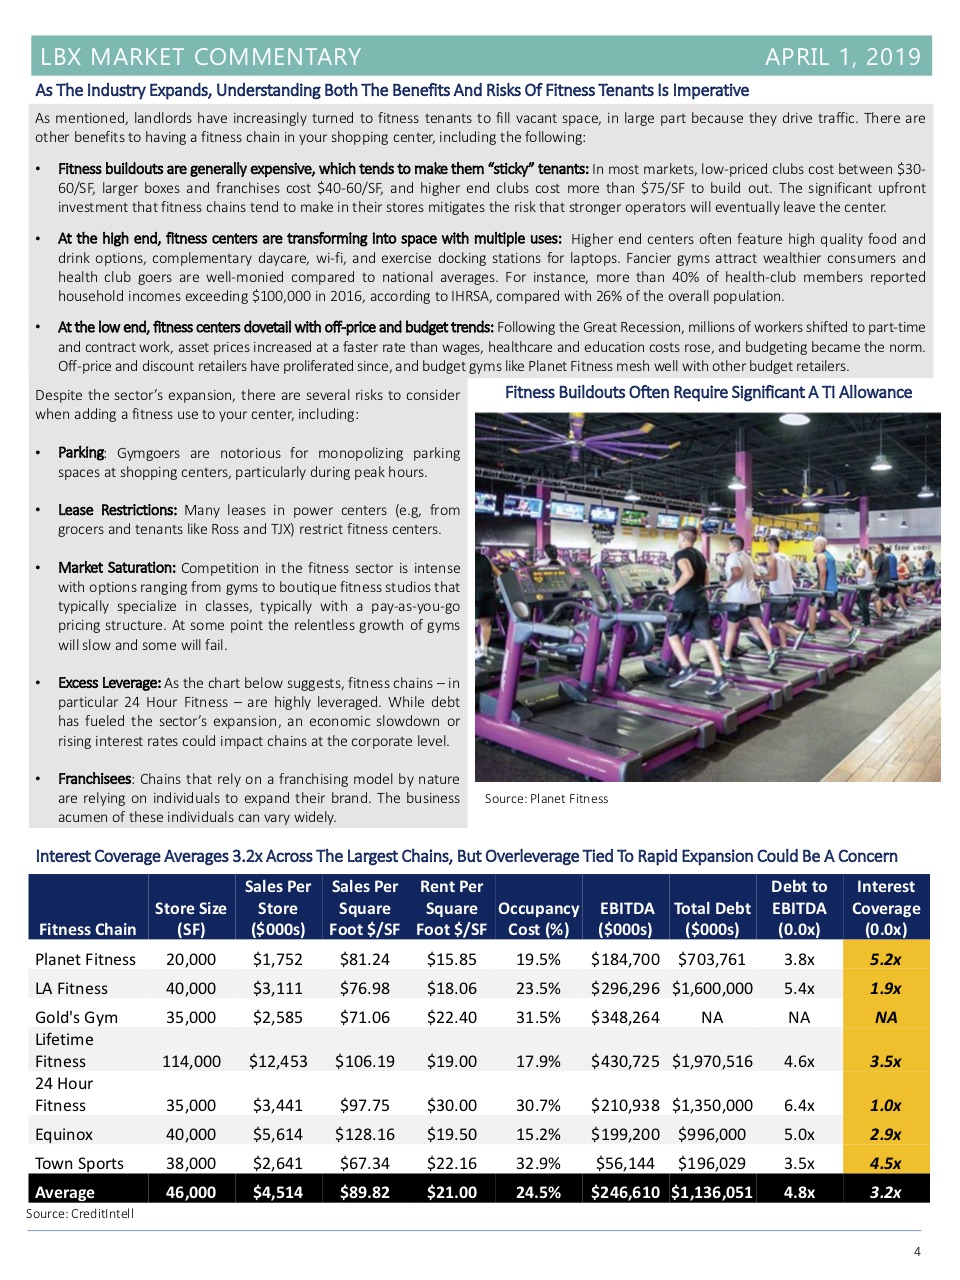 LBX Market Commentary - The Riss Options In Shopping Centers 4.jpg